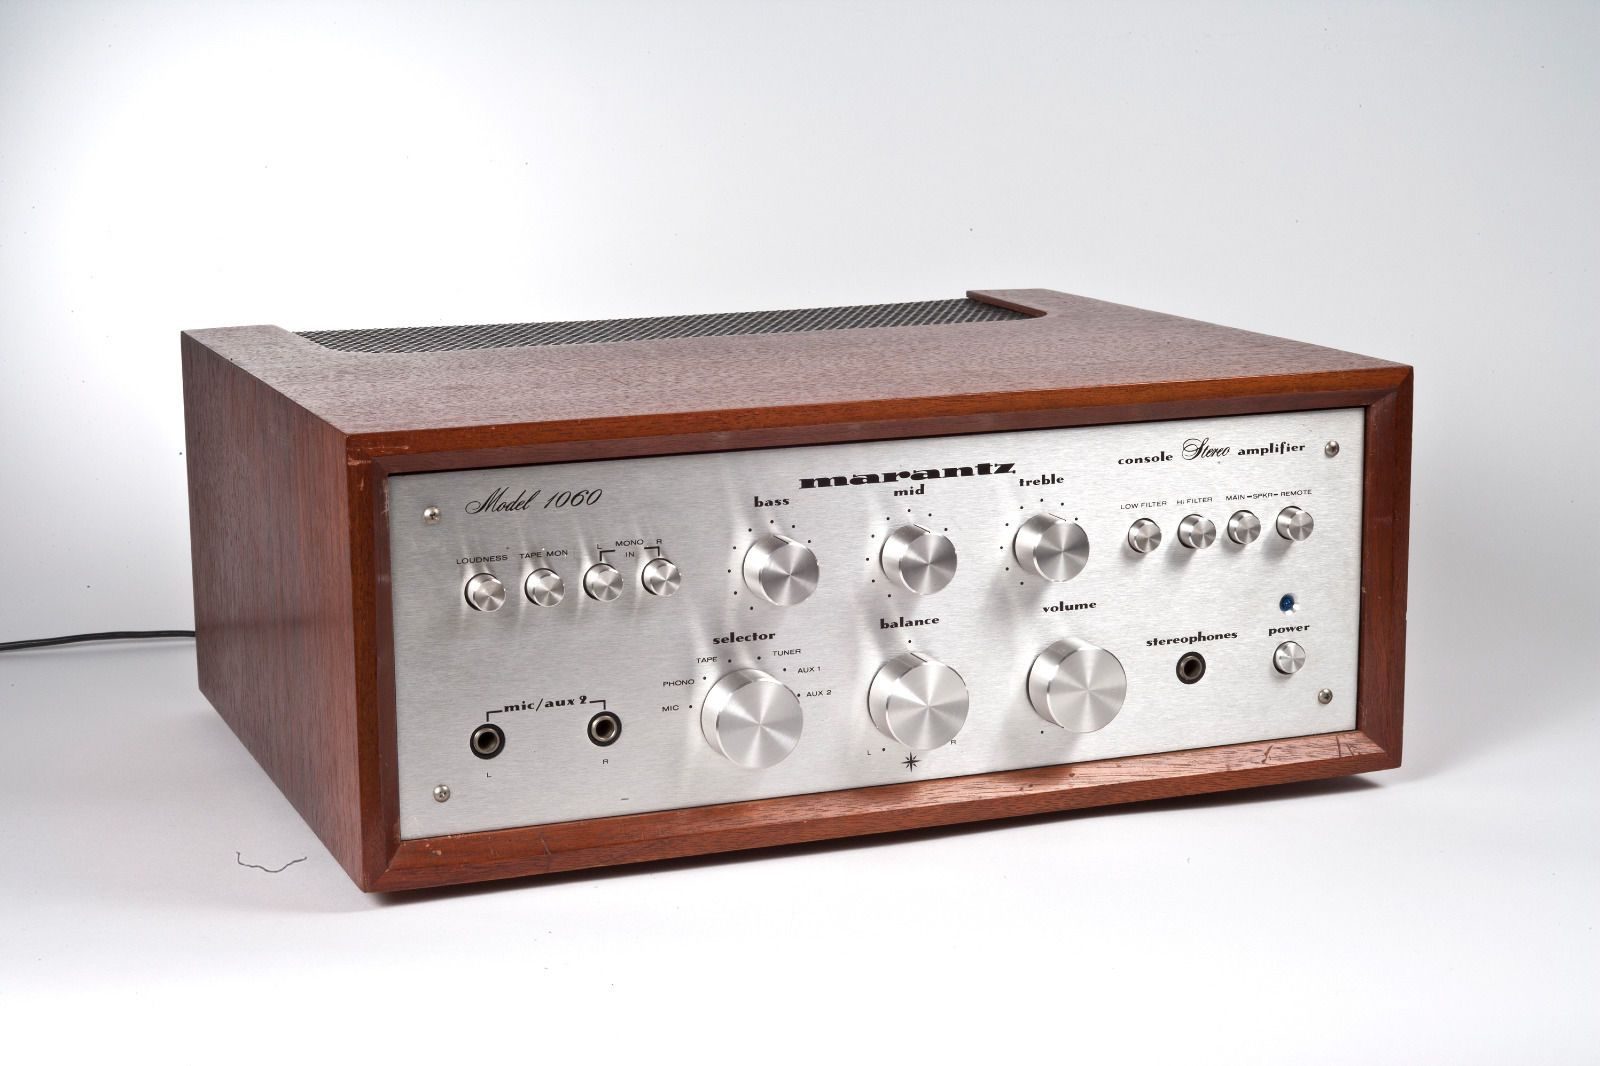 hight resolution of marantz 1060 integrated amp with wc 10 wooden case 30 watts per channel